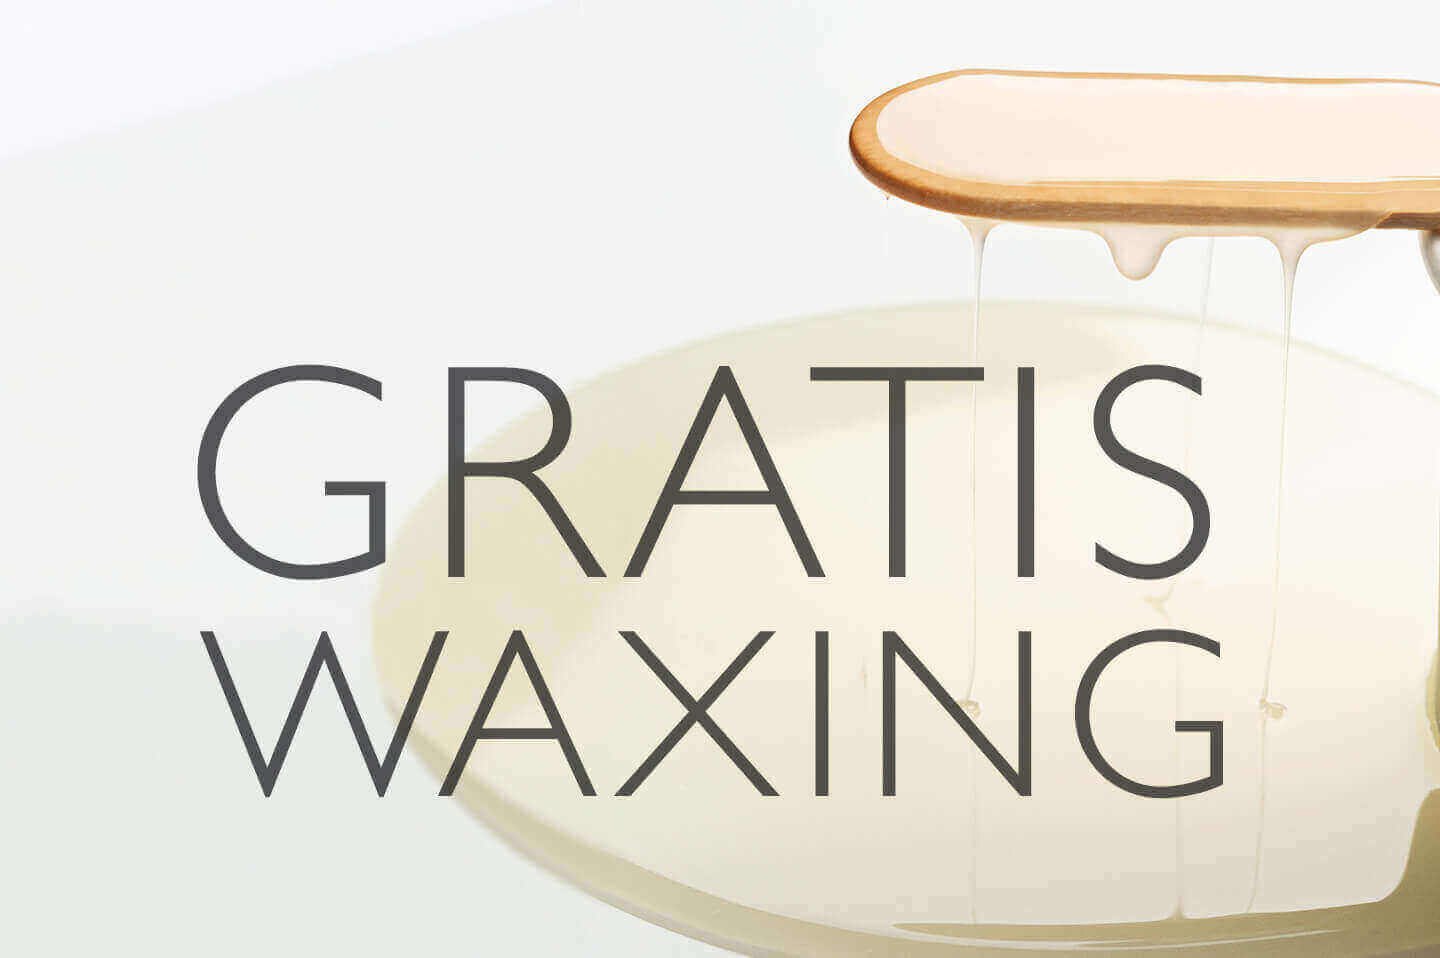 EXTRA WAXING OHNE EXTRA KOSTEN